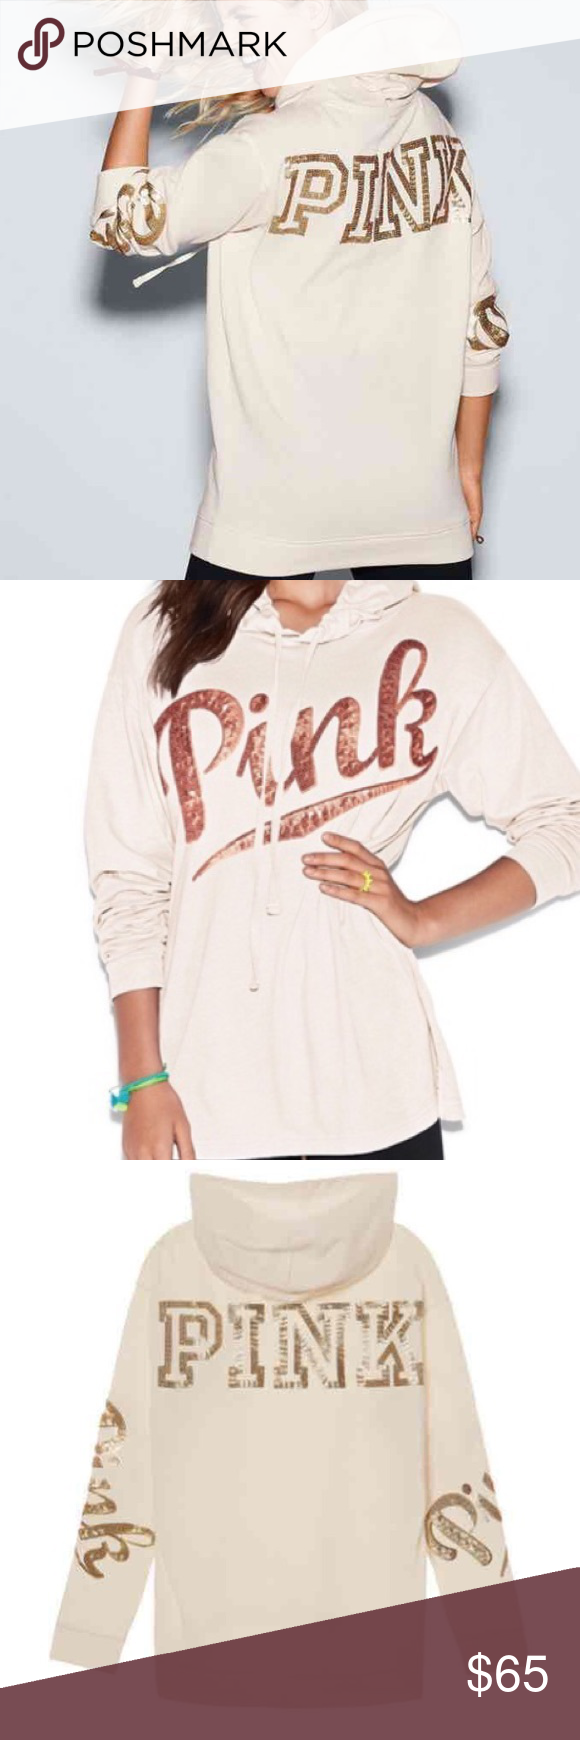 NWT bling hoodie NWT PINK bling campus hoodie - winter white with ...